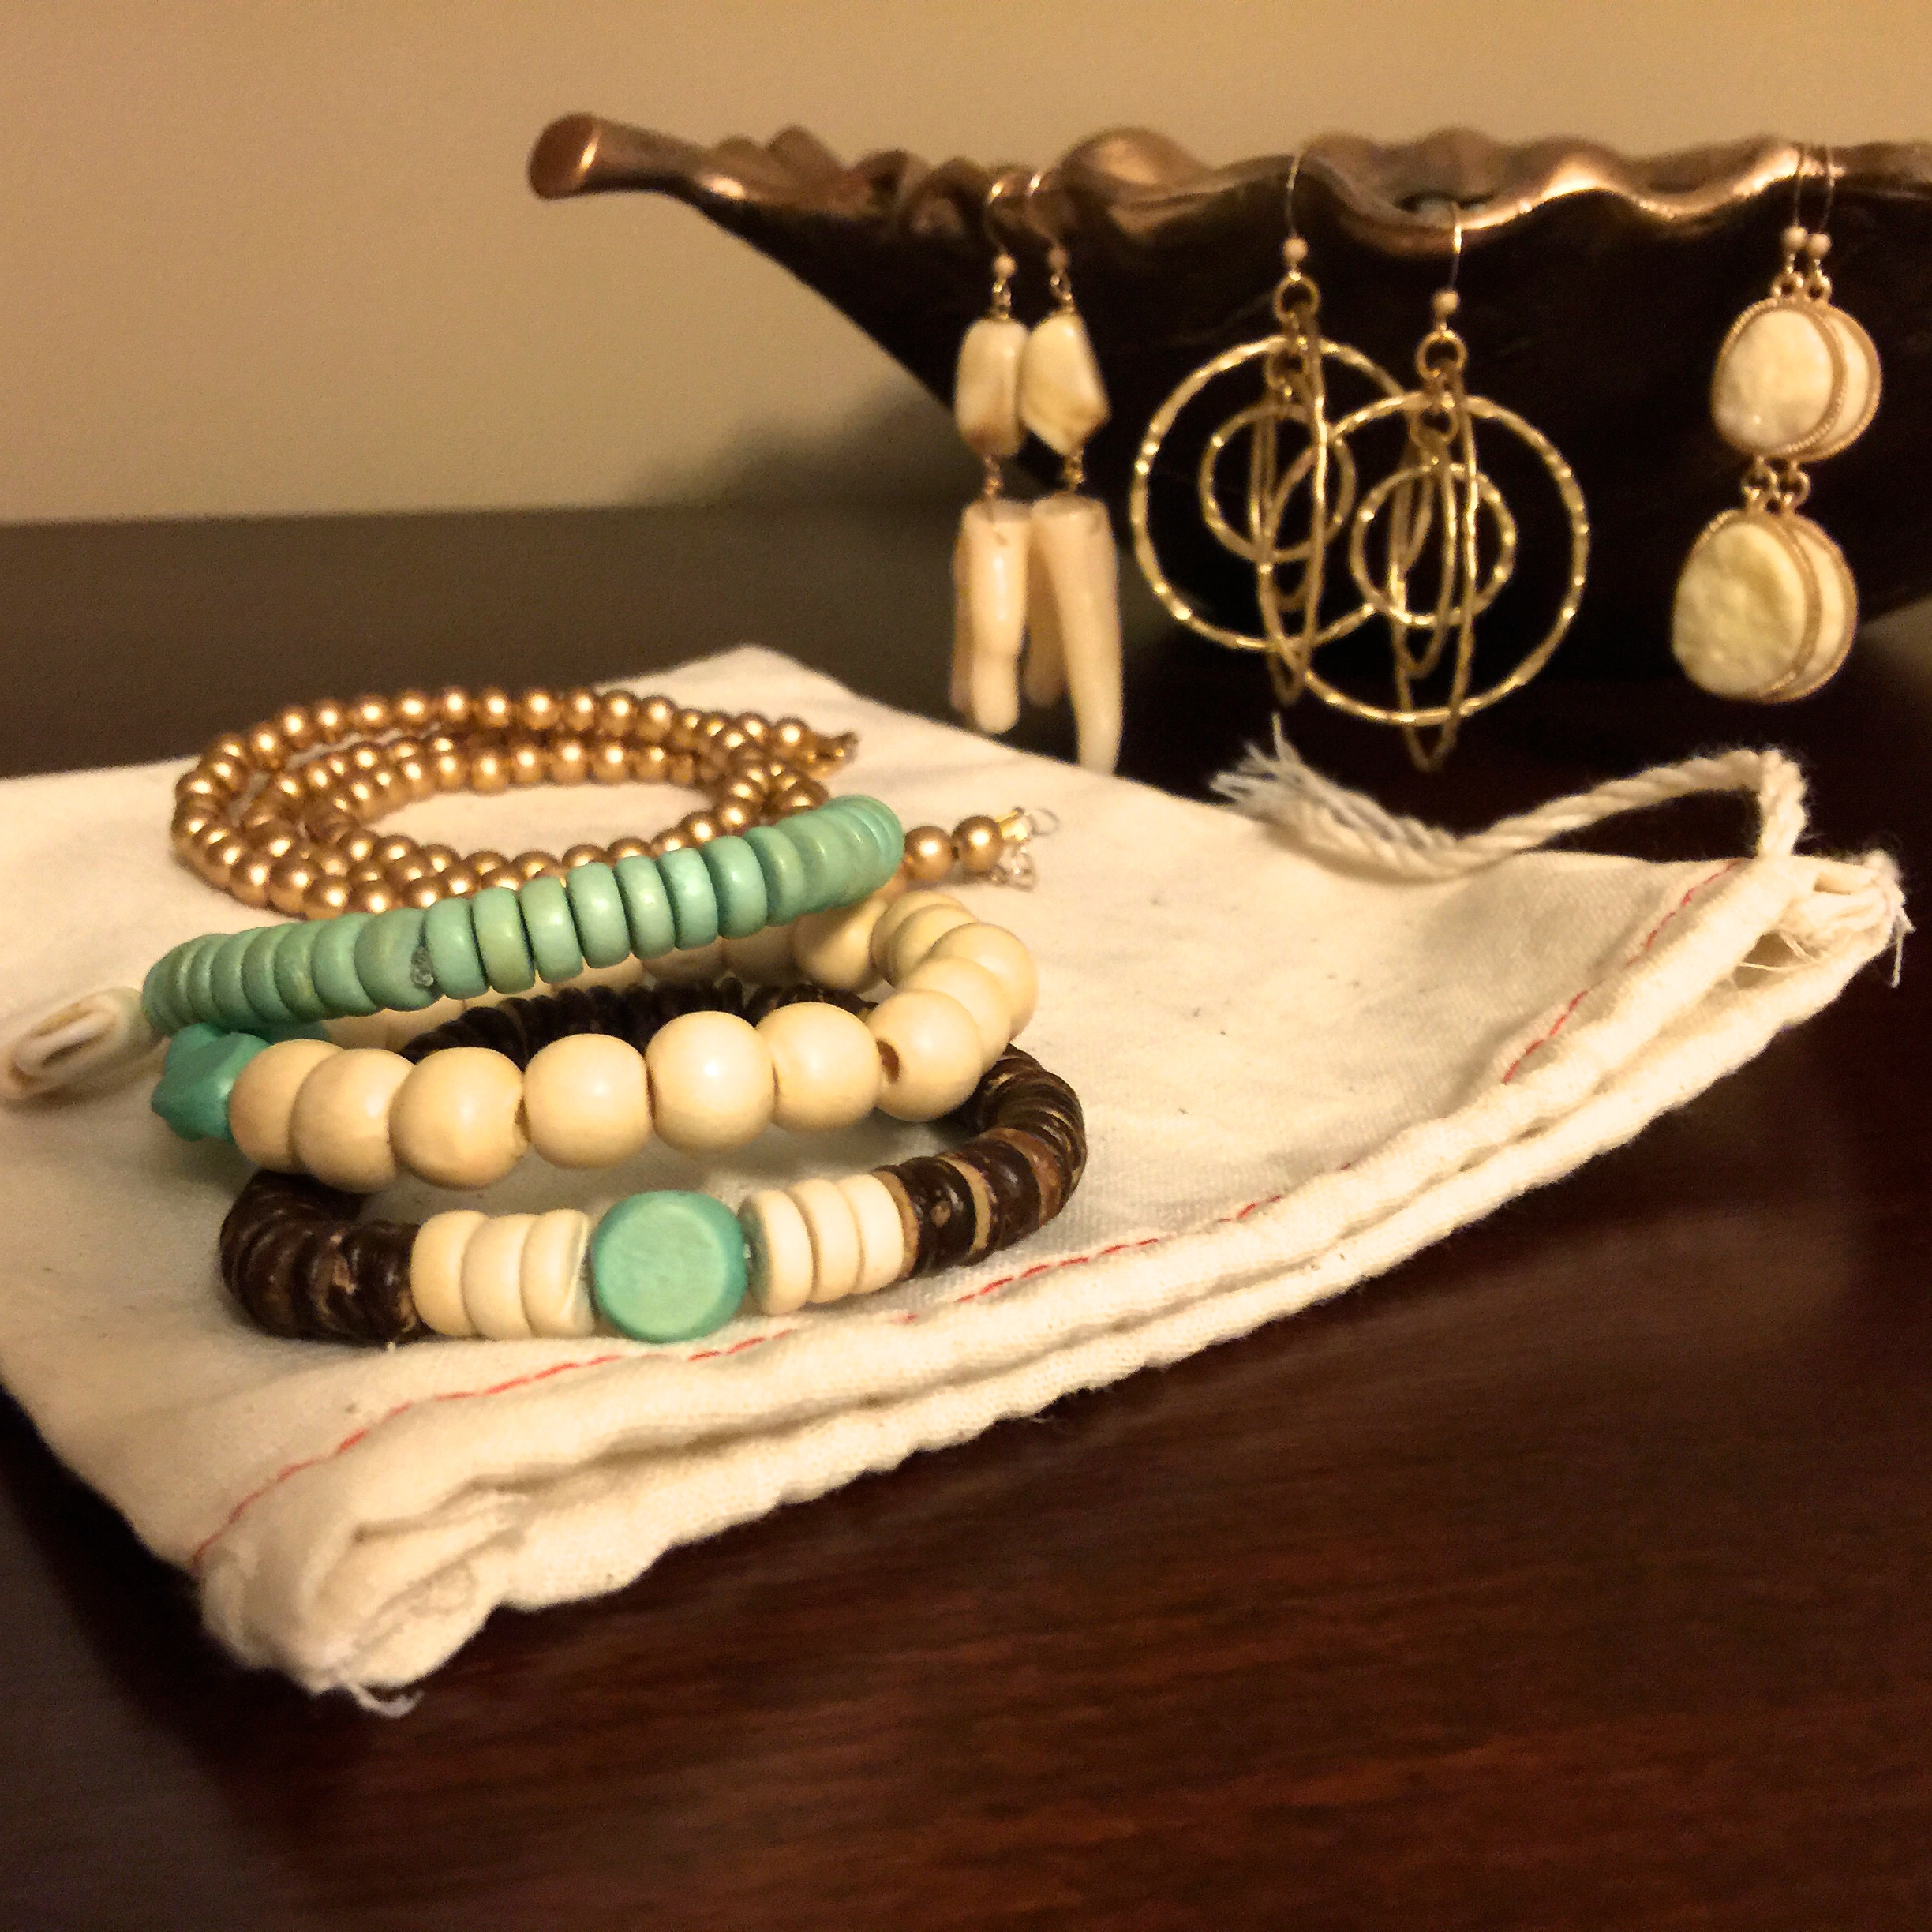 fuel sweat grow: erin mcdermott jewelry